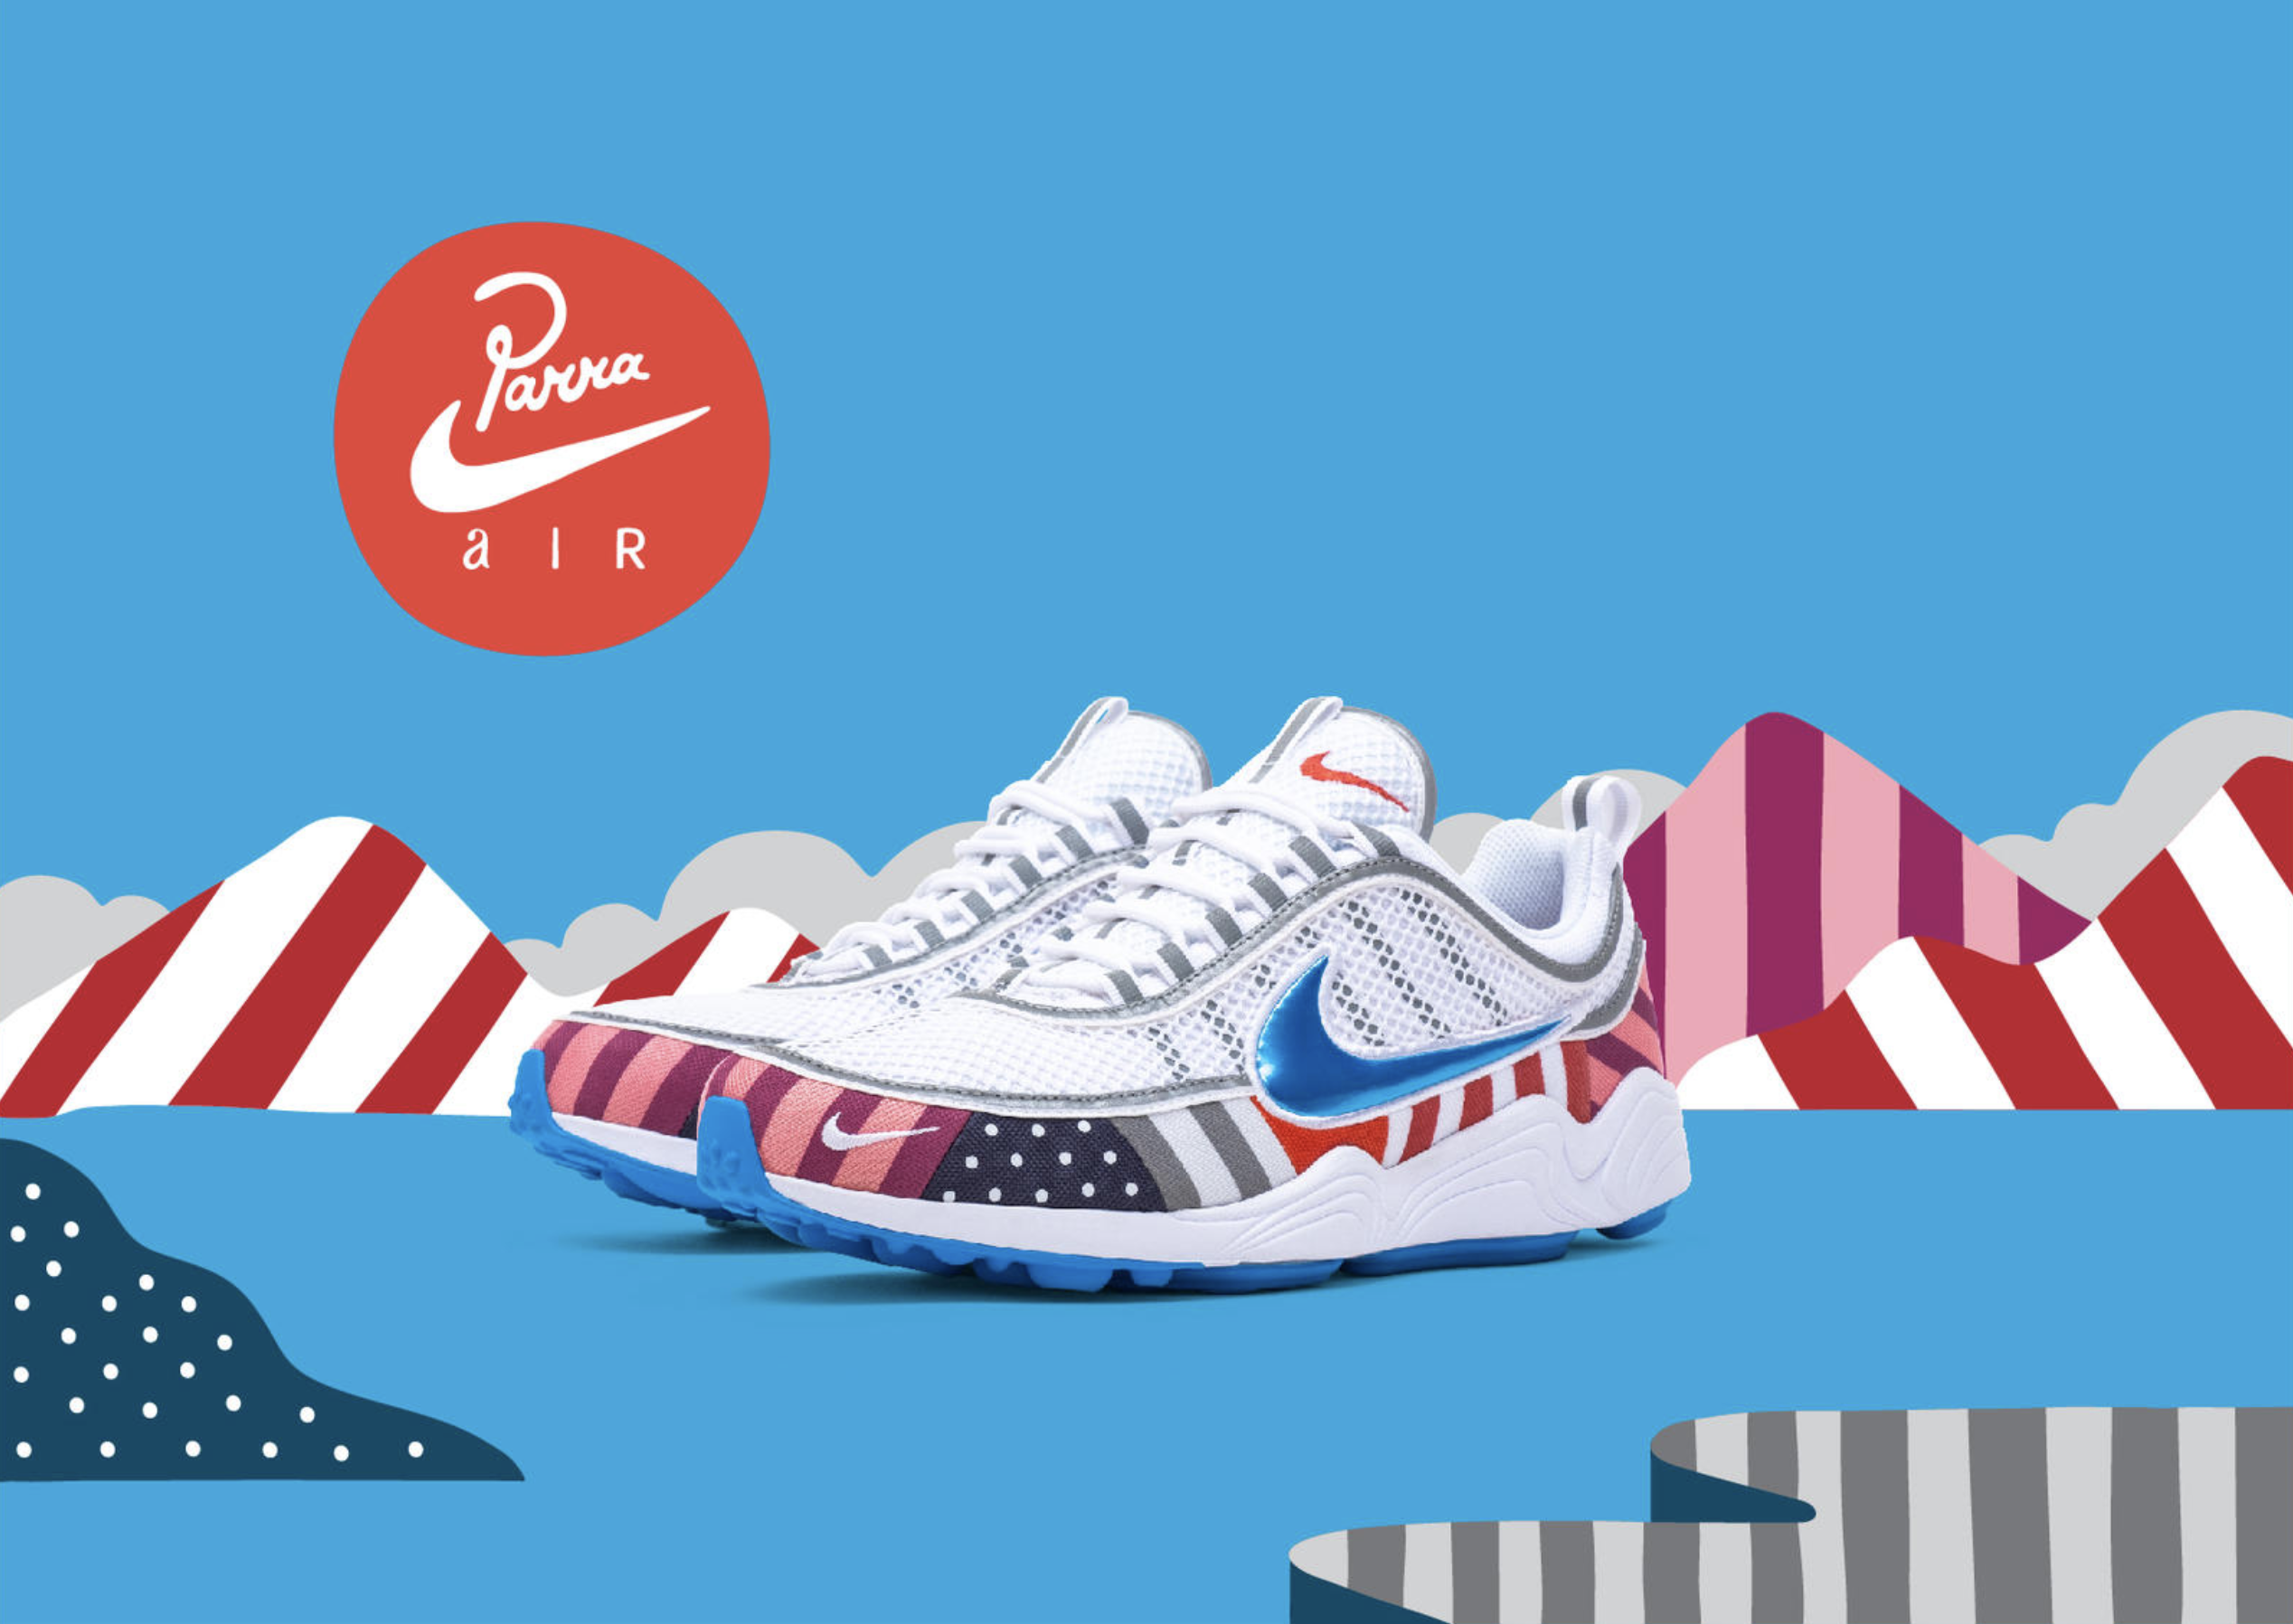 Nike Air Max 1 x Parra Zoom Spiridon AT3057-100